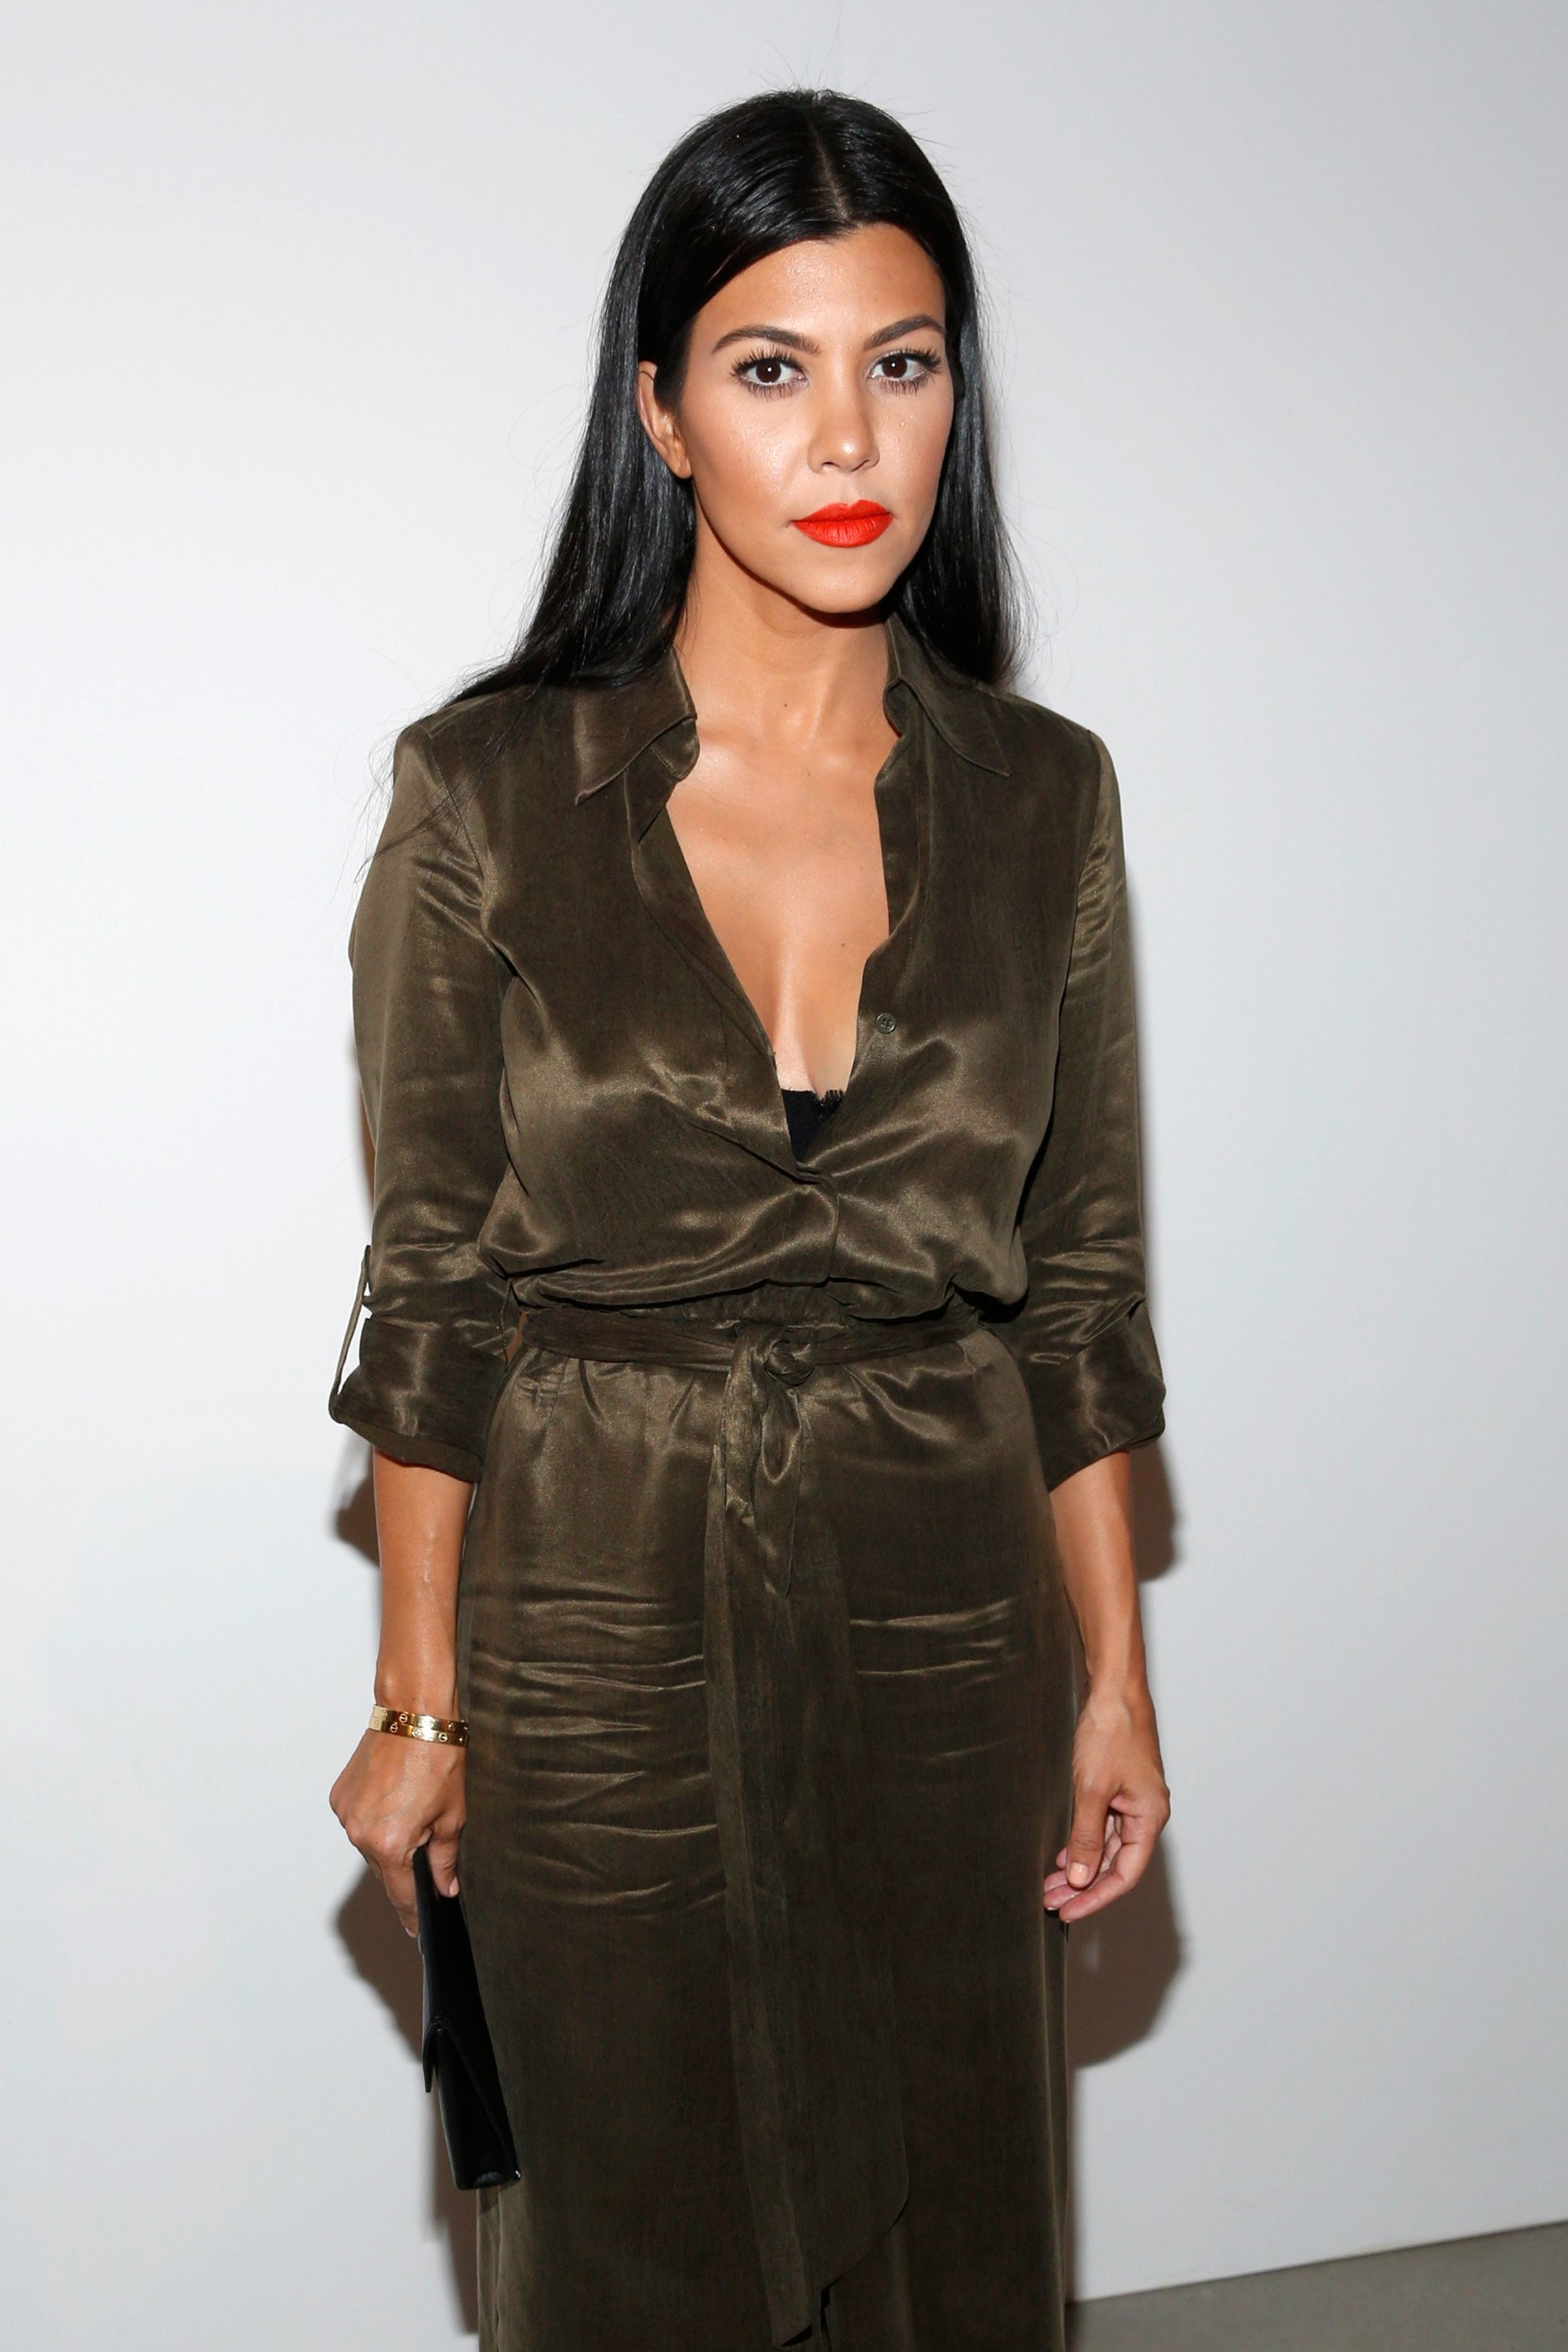 Image Credits: Getty Images |  Kourtney Kardashian posing for a photograph